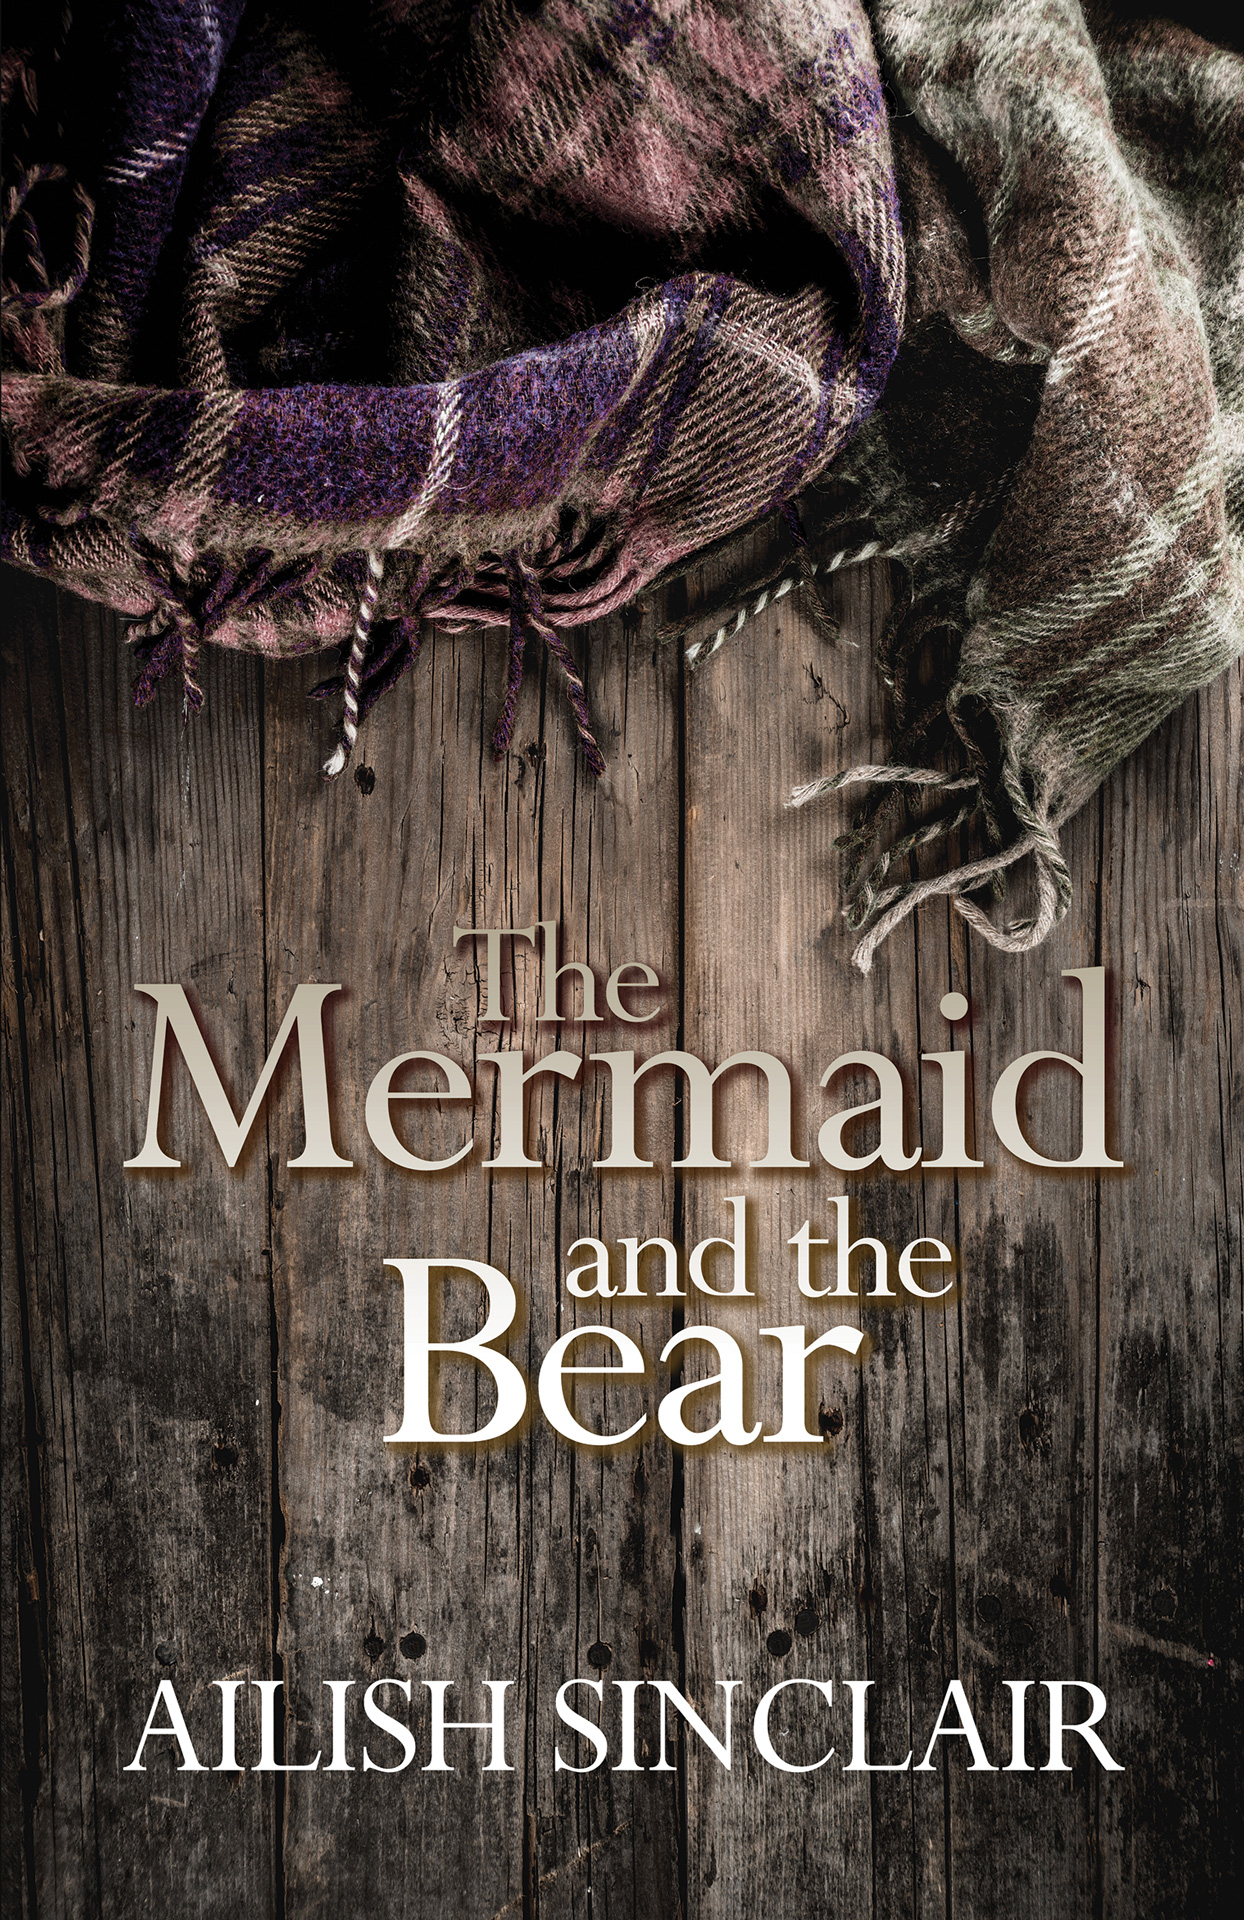 Cover image of The Mermaid and The Bear by Ailish Sinclair.